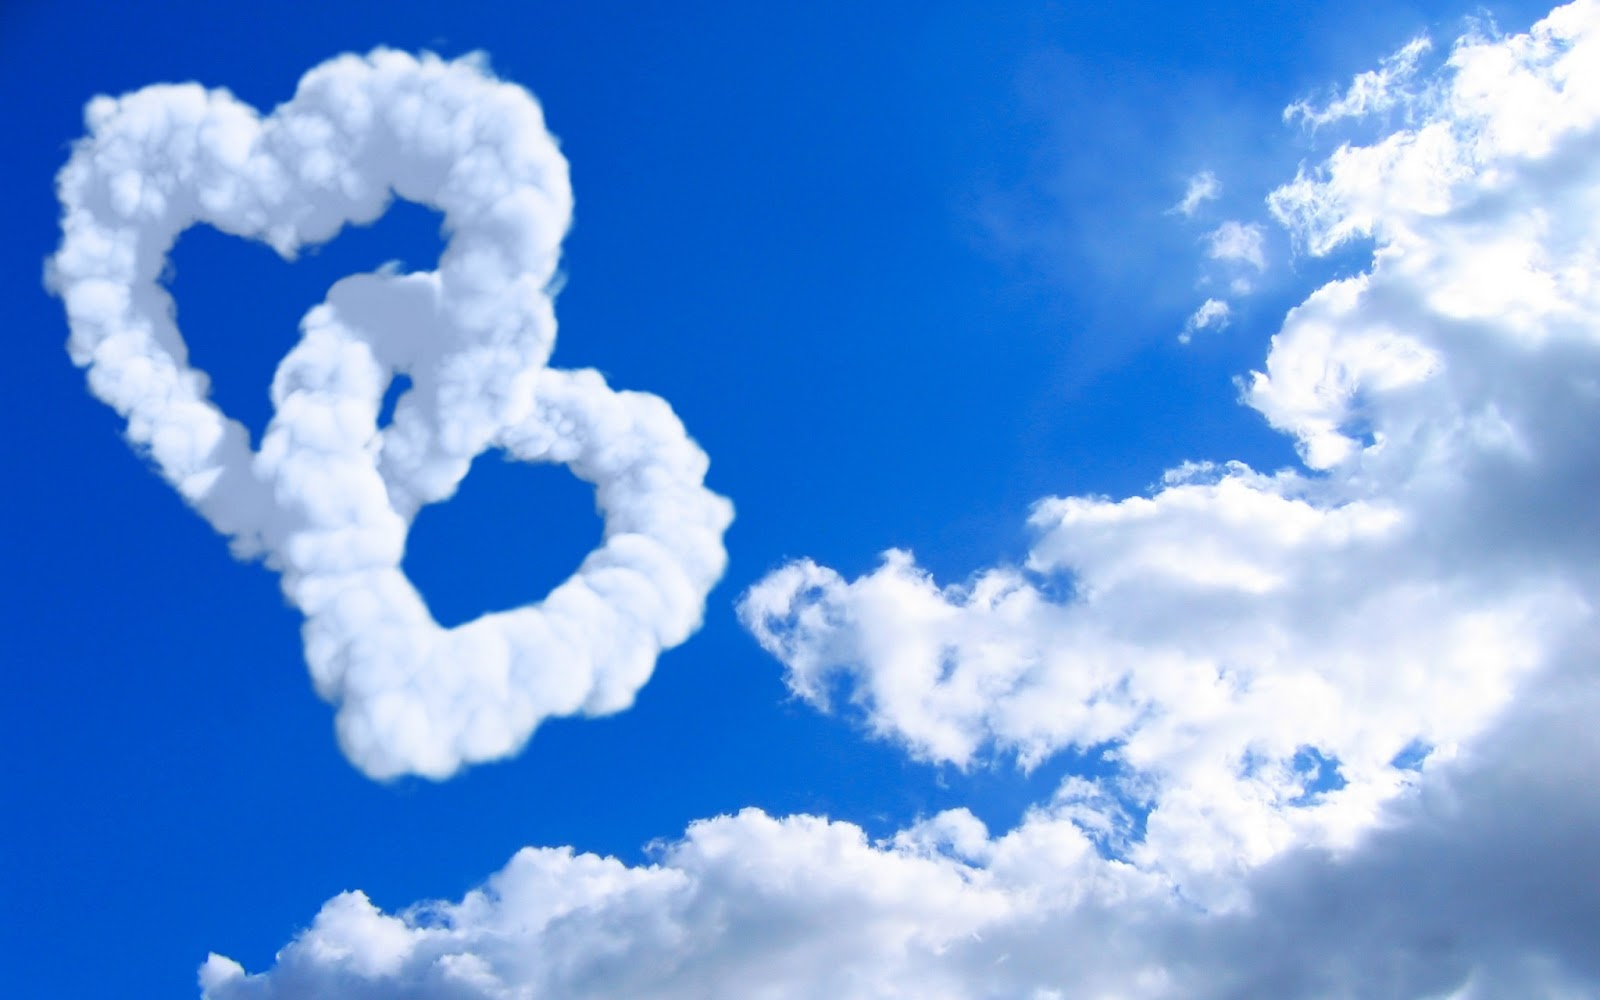 Love Wallpaper 3d Image : Free Wallpaper Dekstop: 3d love with clouds wallpaper, wallpaper for desktop